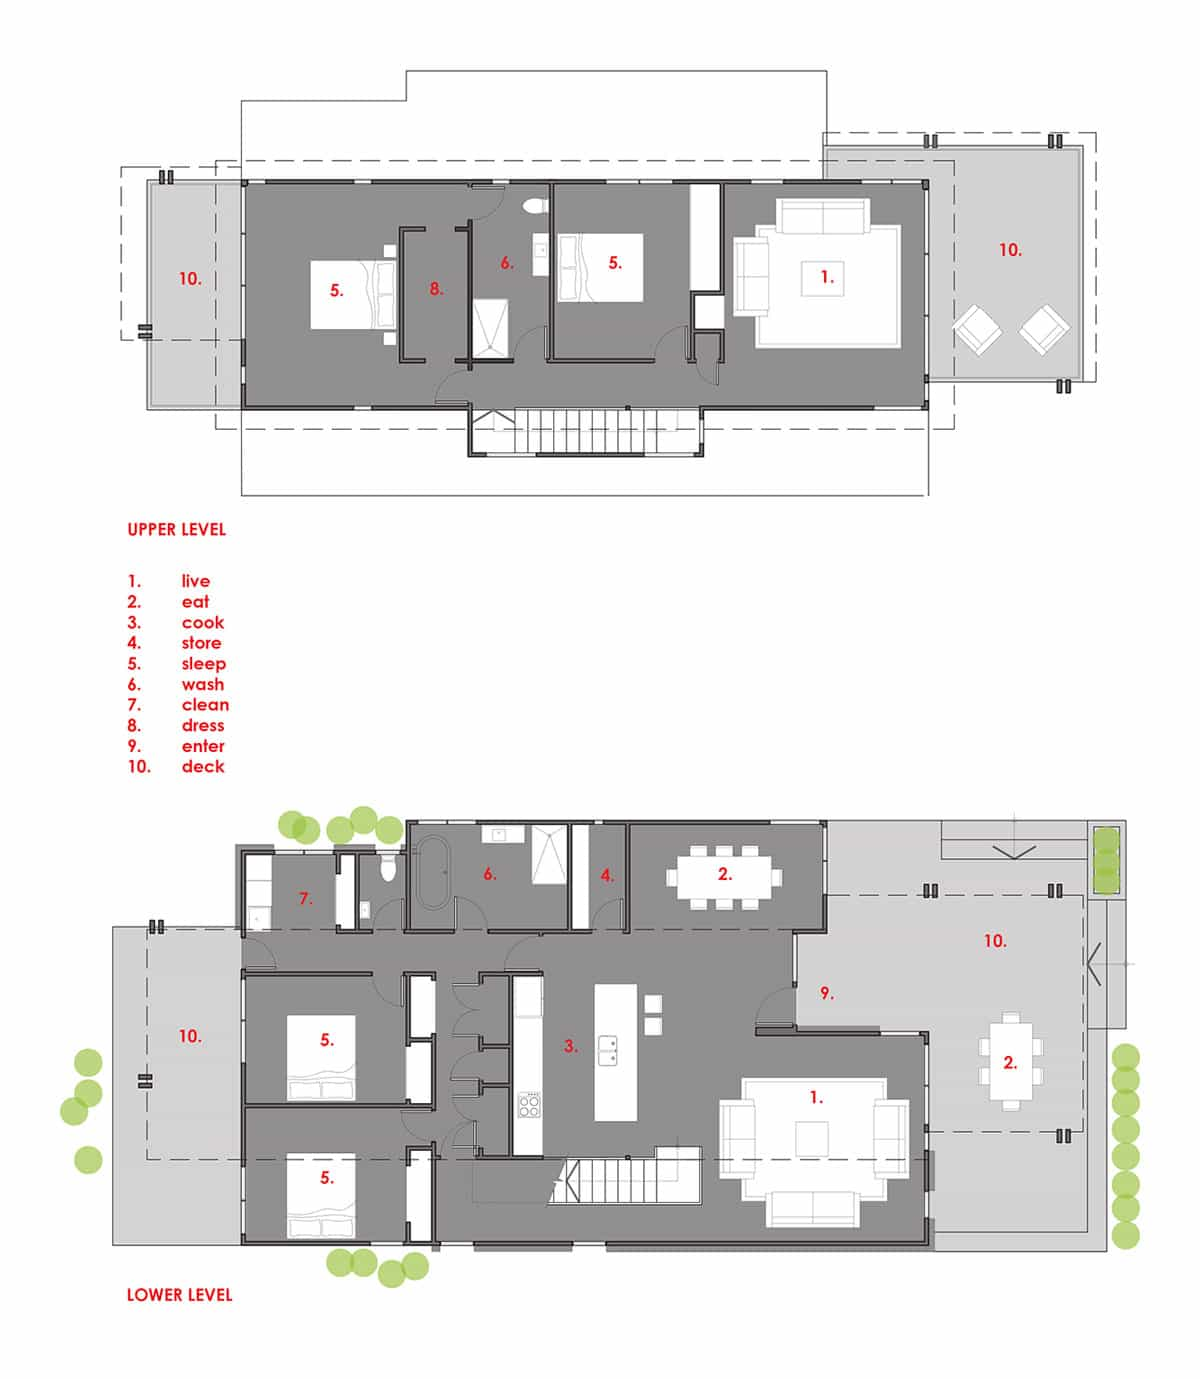 Graphite architectsgraphite architects family beach house for Family beach house plans